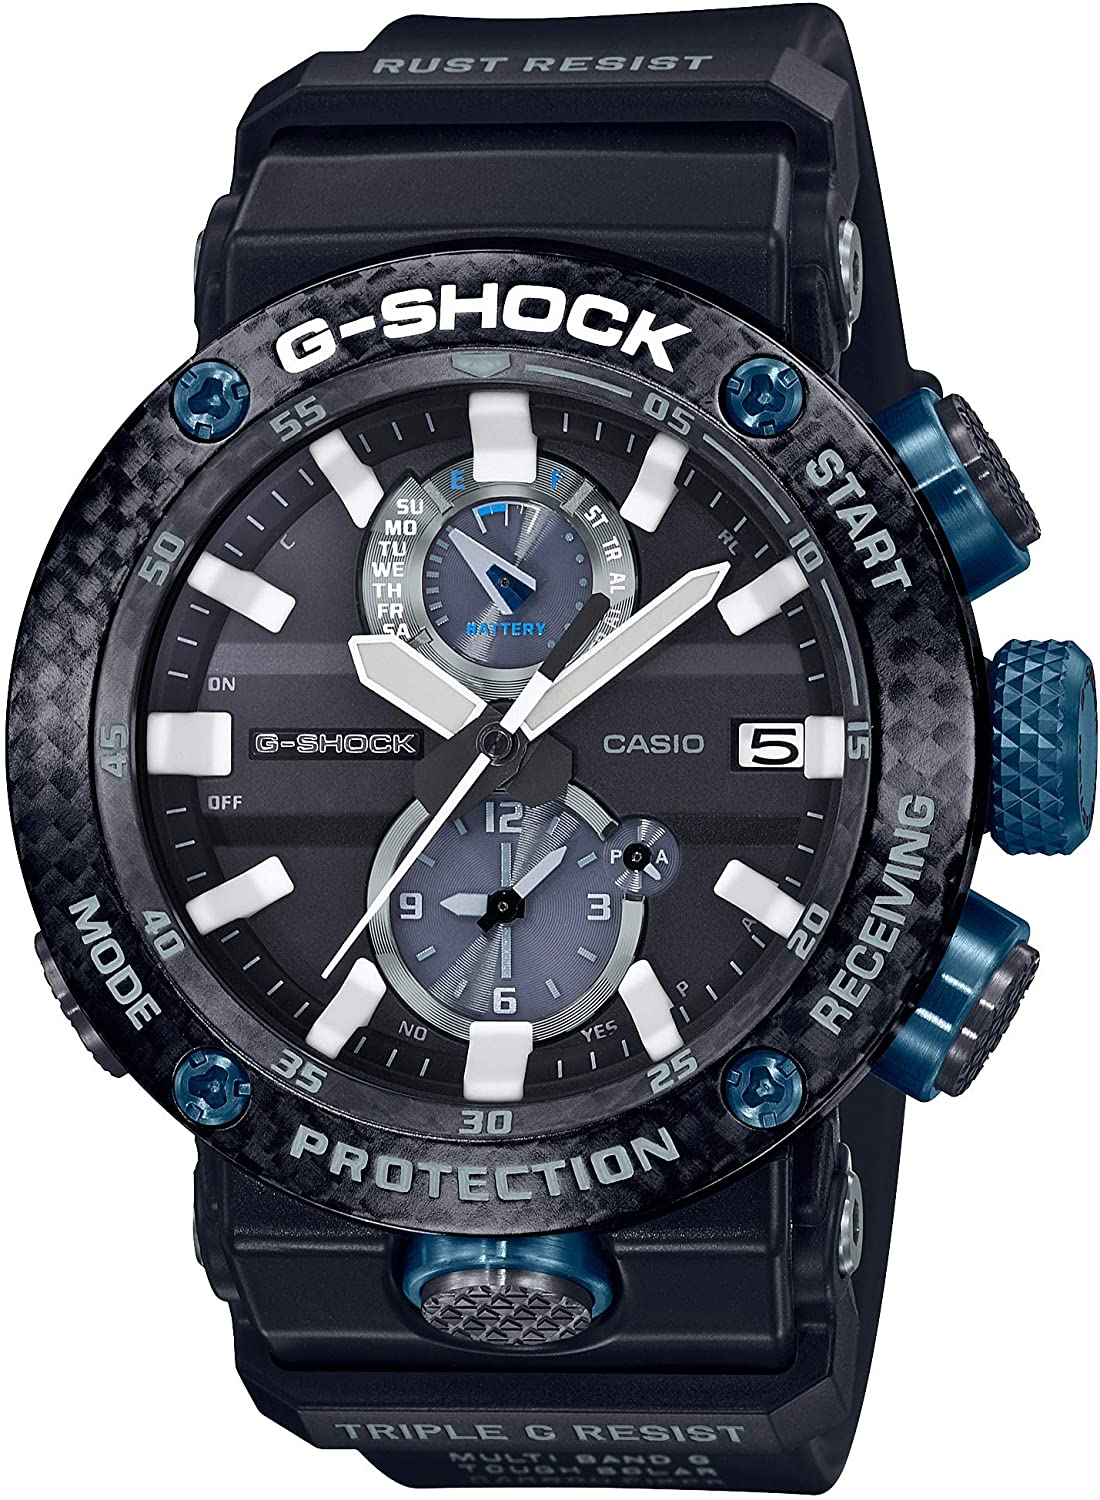 Casio G-Shock GWR-B1000-1A1JF GRAVITYMASTER Radio Solar Bluetooth Carbon Core Guard Watch Japan Domestic Genuine Products